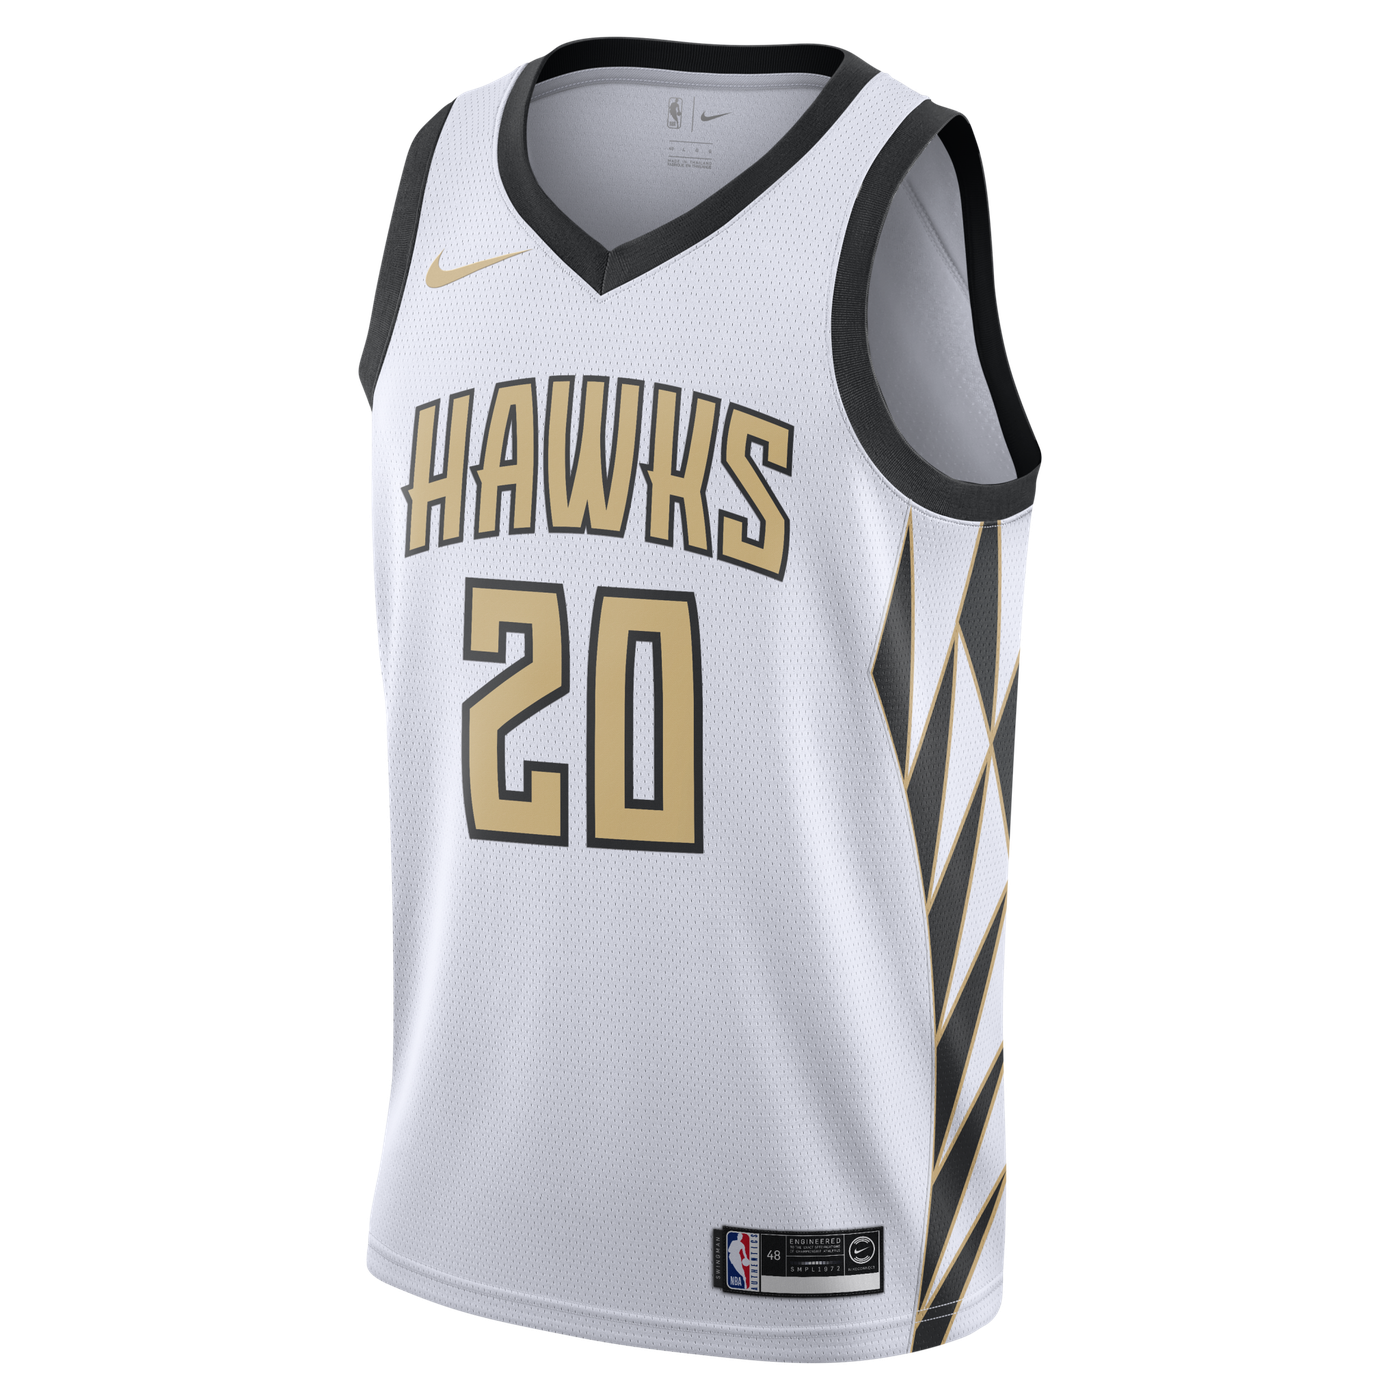 size 40 731e2 dab6b NBA City Edition: The jerseys, T-shirts and merch you can ...